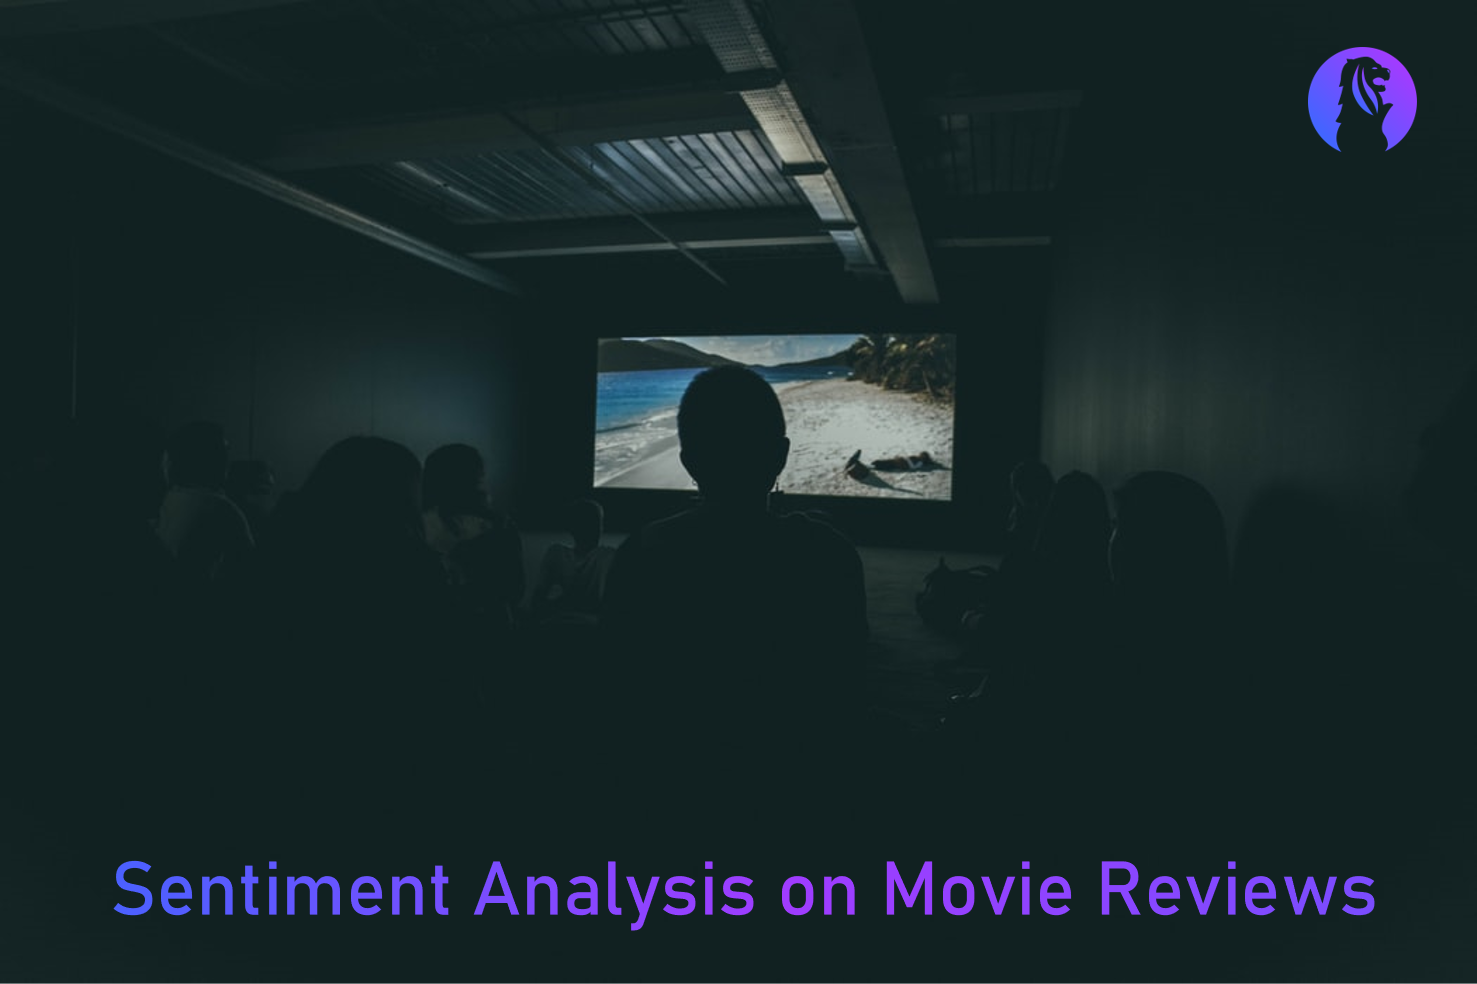 Sentiment Analysis on Movie Reviews